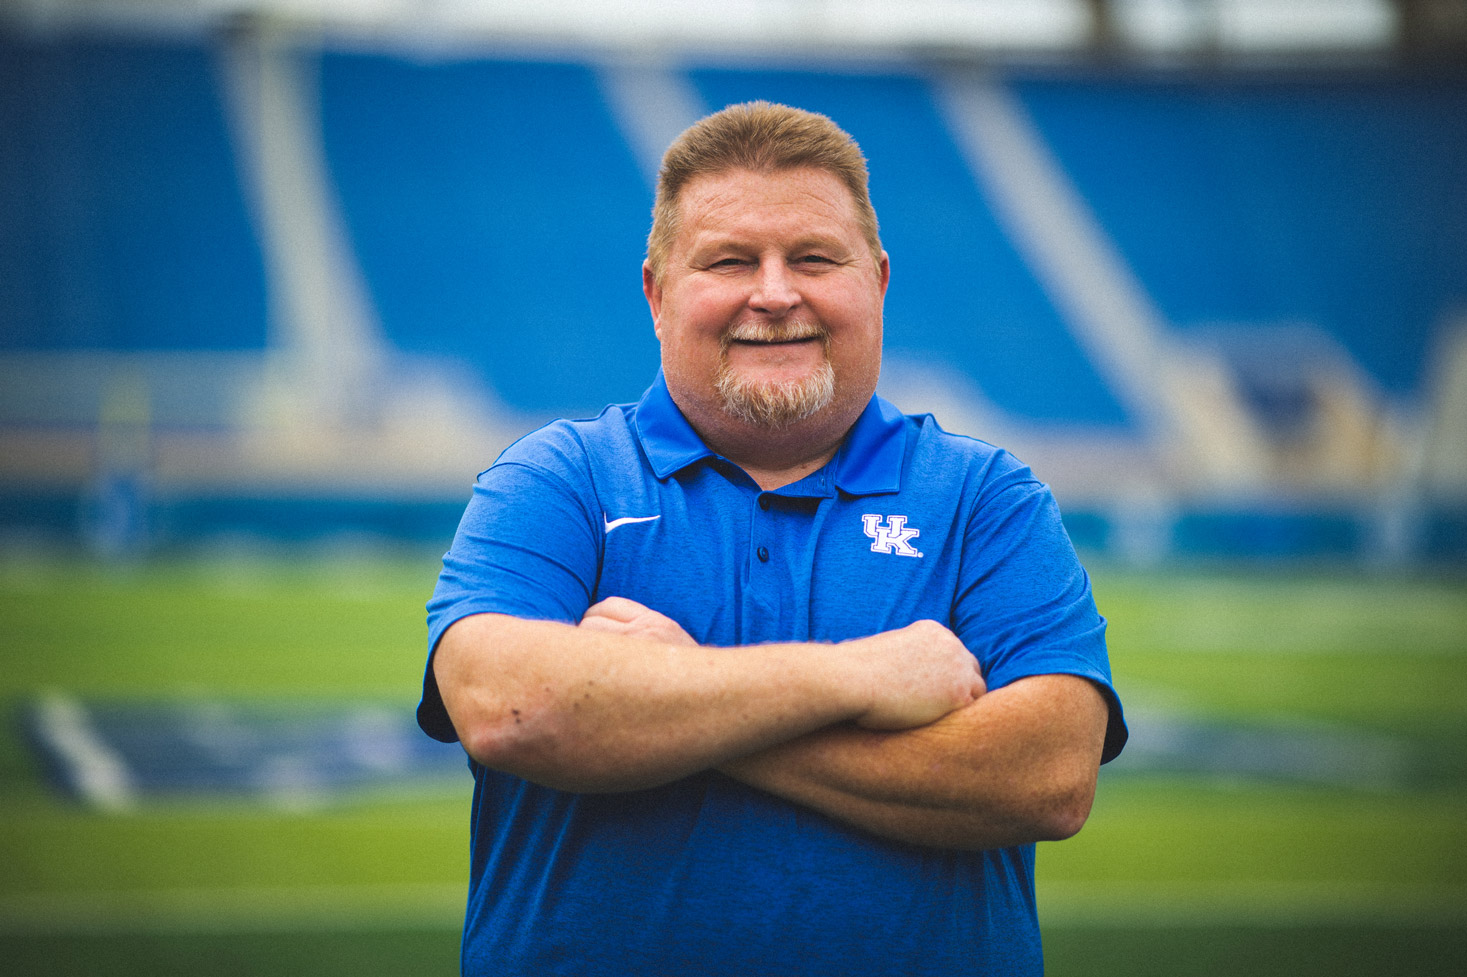 Jimmy crosses his arms and smiles while out on the UK Football field.